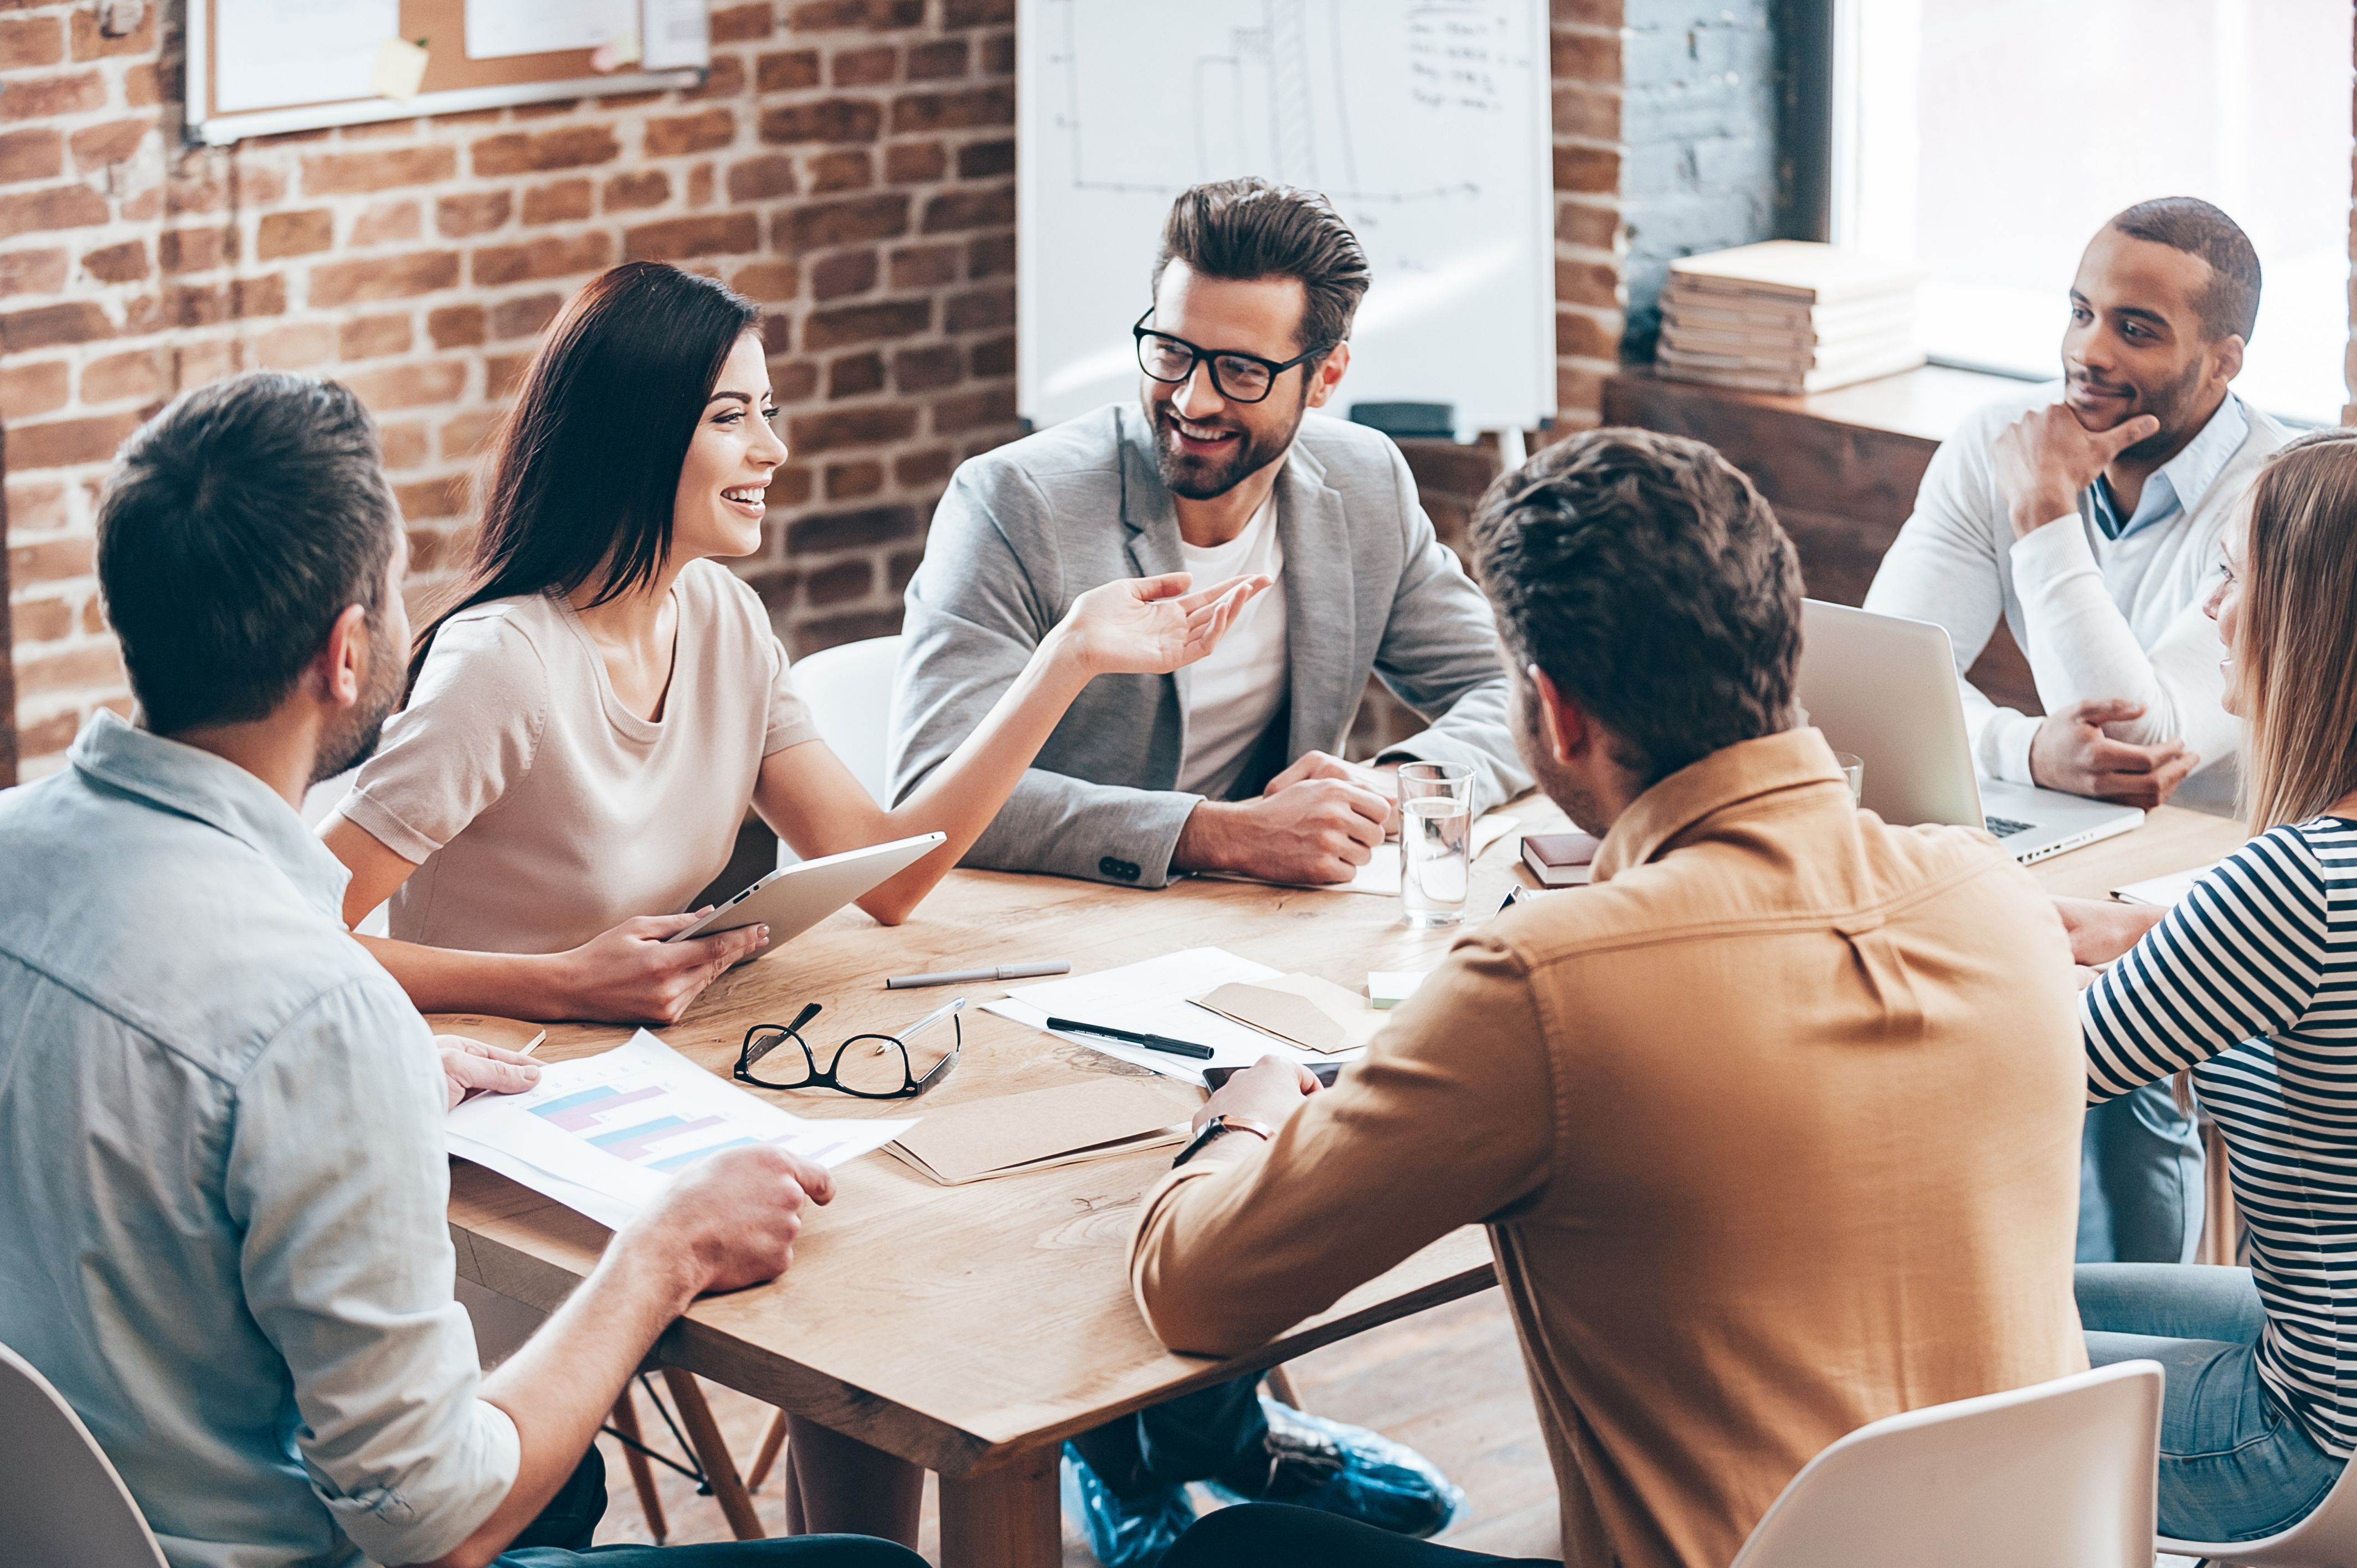 Co-workers talking on a table. | Source: Shutterstock